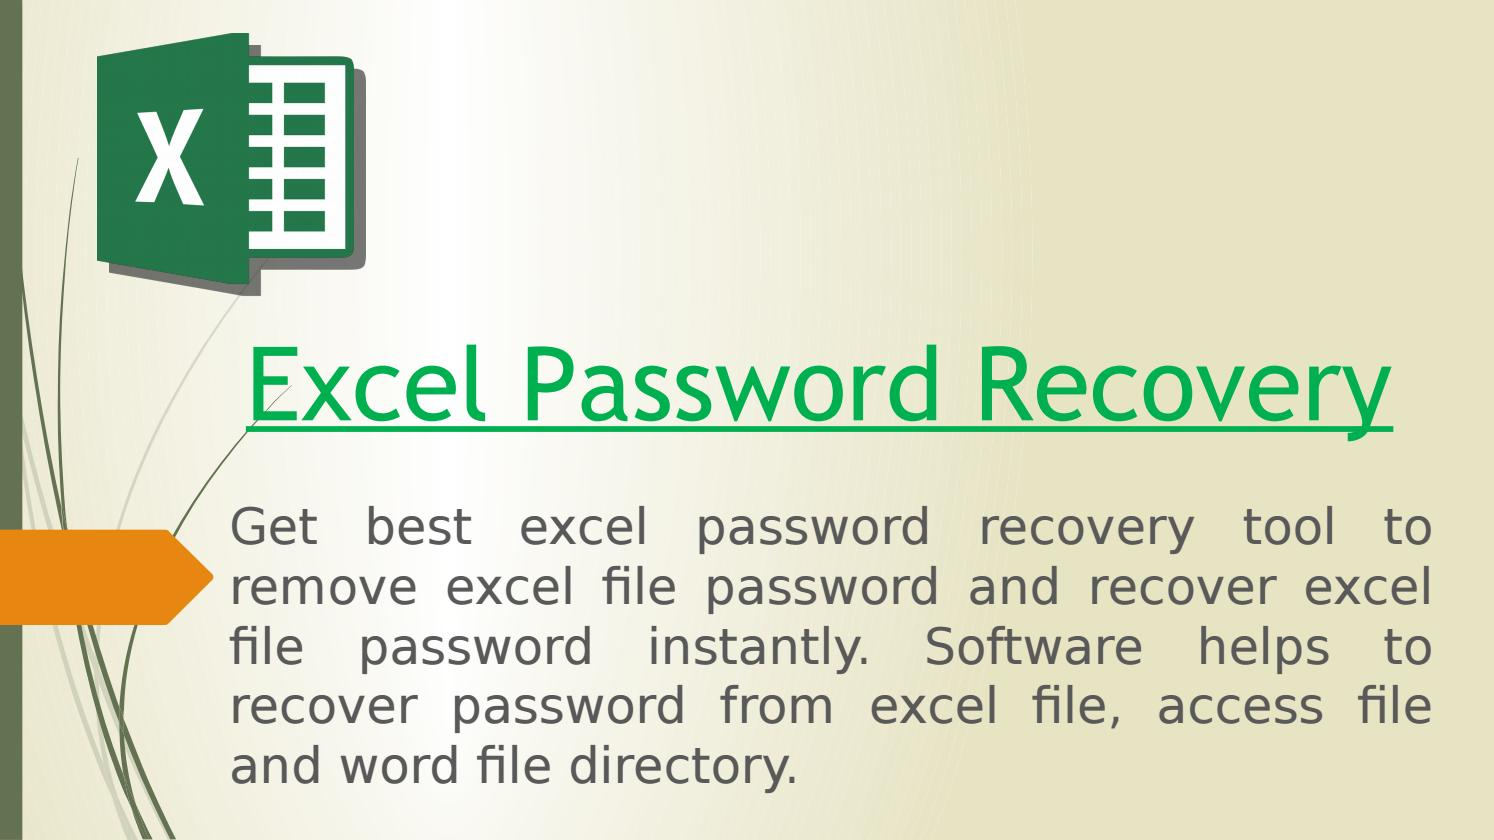 How to Fix Excel Password Recover of Microsoft? by Alina Steven - issuu